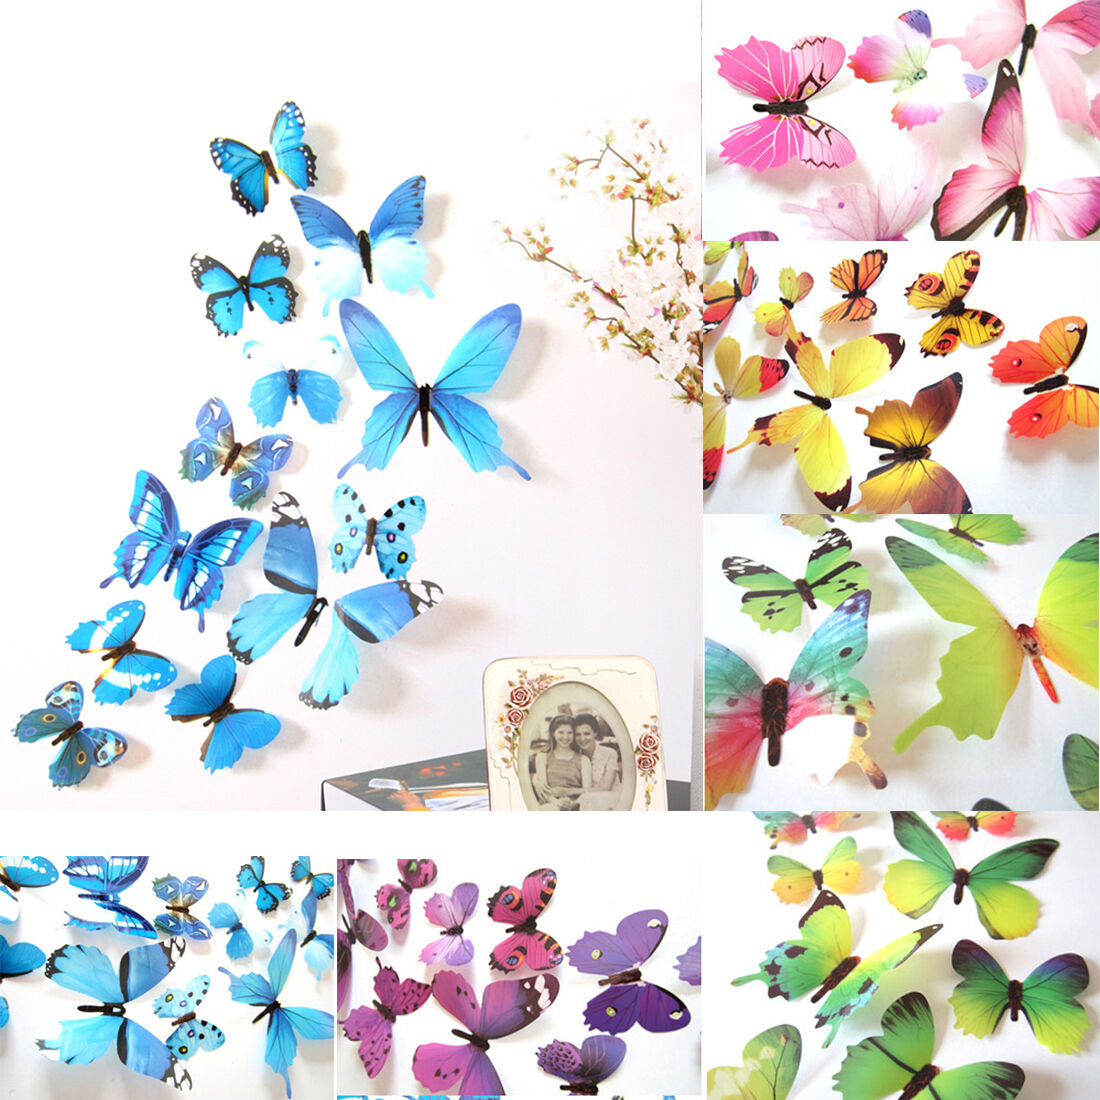 Home Decoration - 12pc PVC Wall Stickers Home Party Decoration 3D Butterfly Rainbow Decal Decor b1